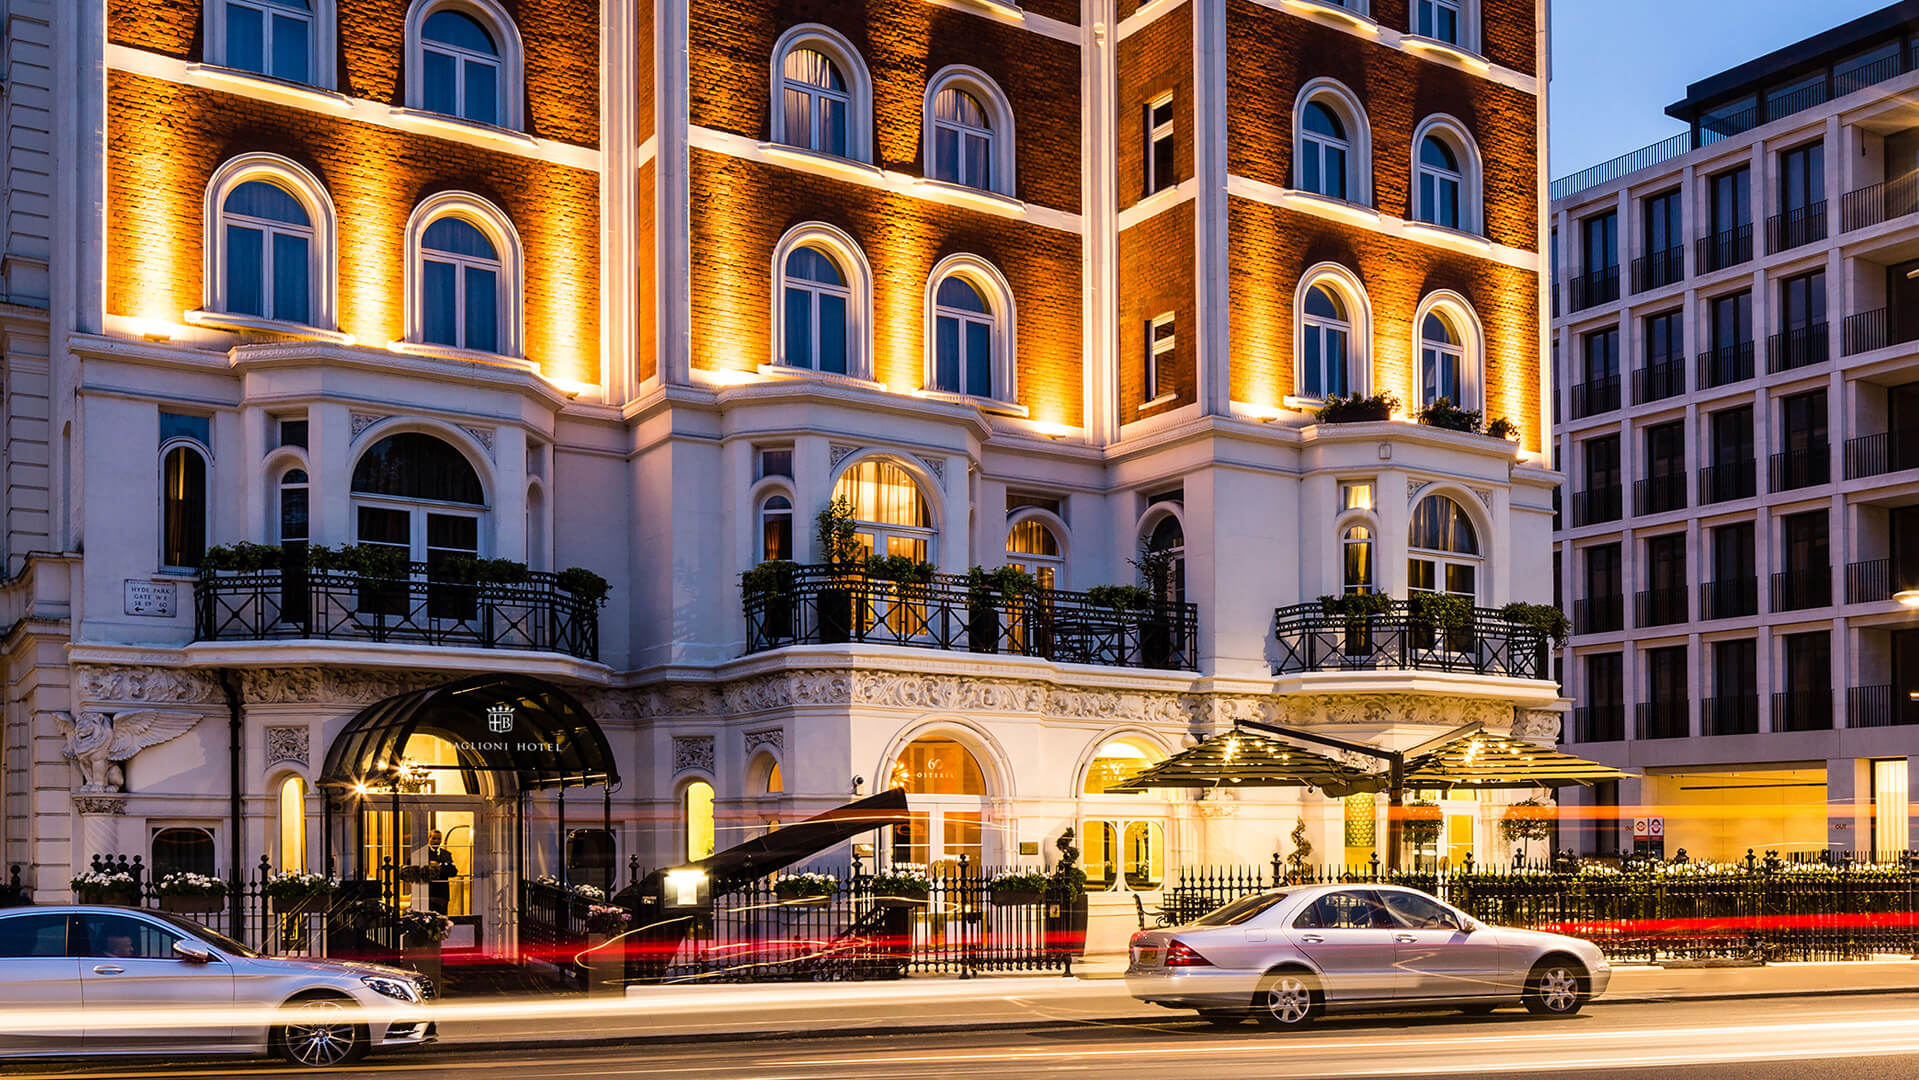 Baglioni Hotel London at sunset